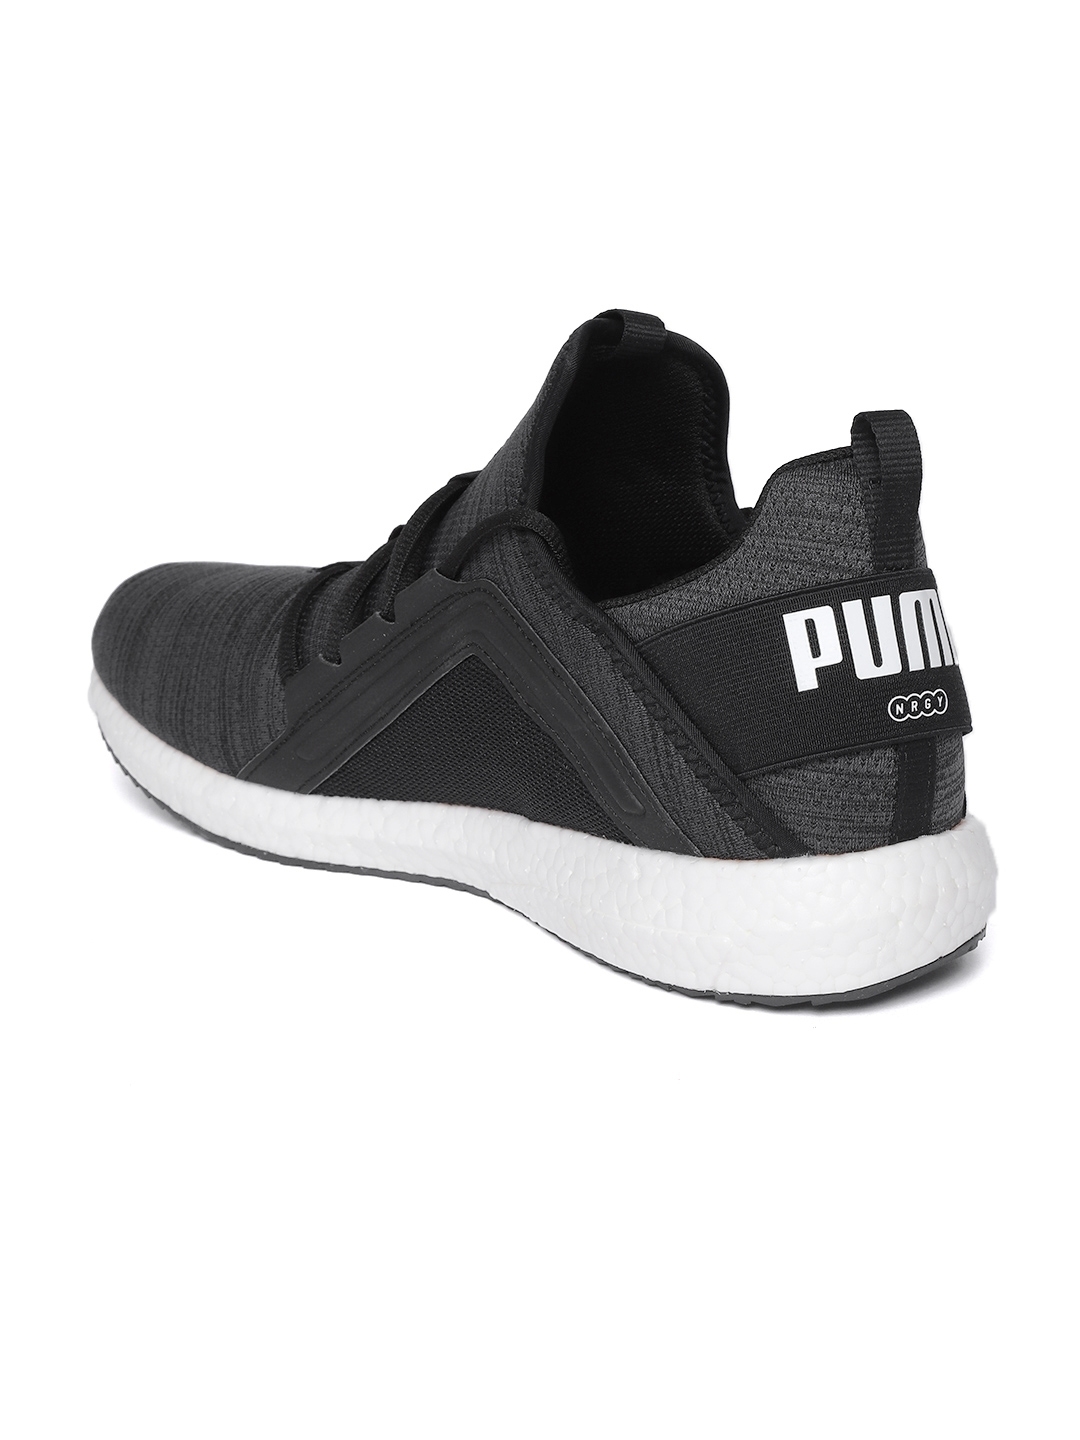 f1186a5dacee Puma Men Charcoal Grey   Black Mega NRGY Heather Knit Self-Striped Running  Shoes